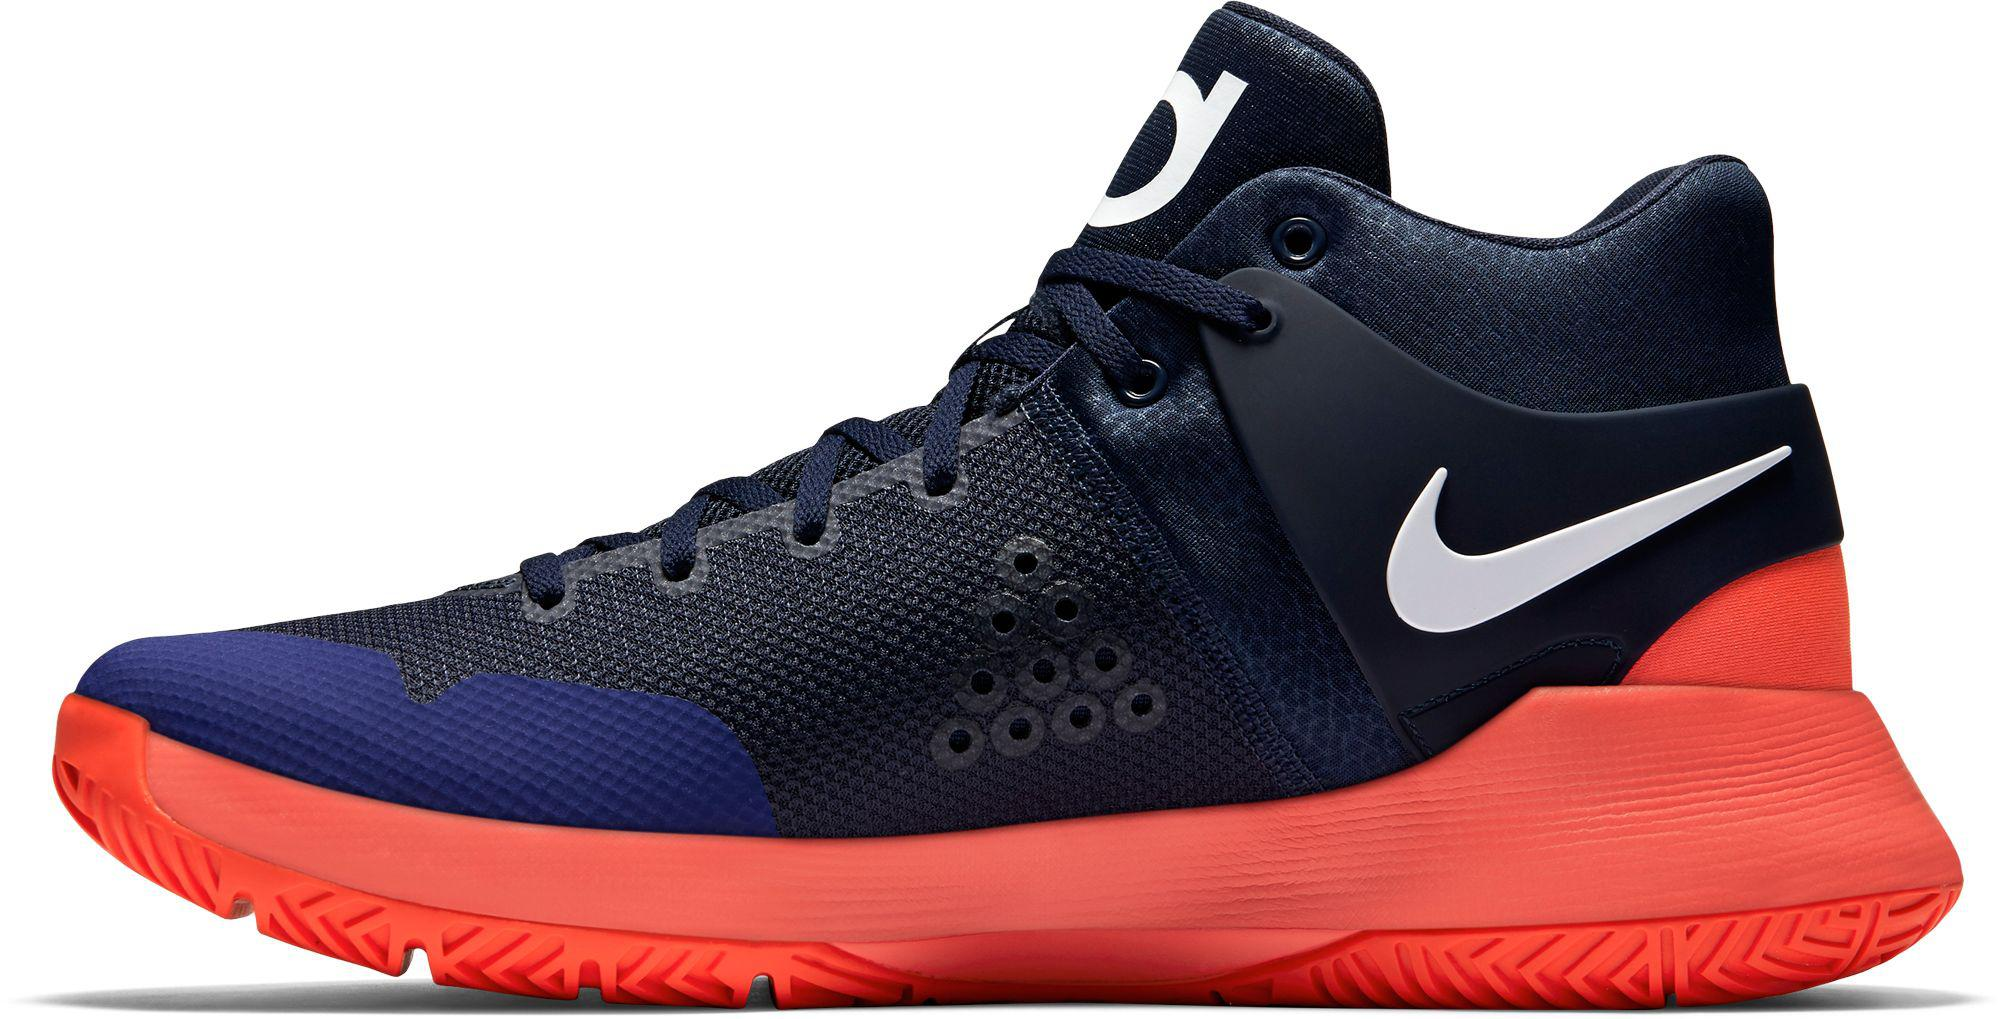 a090b558864 ... closeout lyst nike kd trey 5 iv basketball shoes in blue for men cd19f  91dca